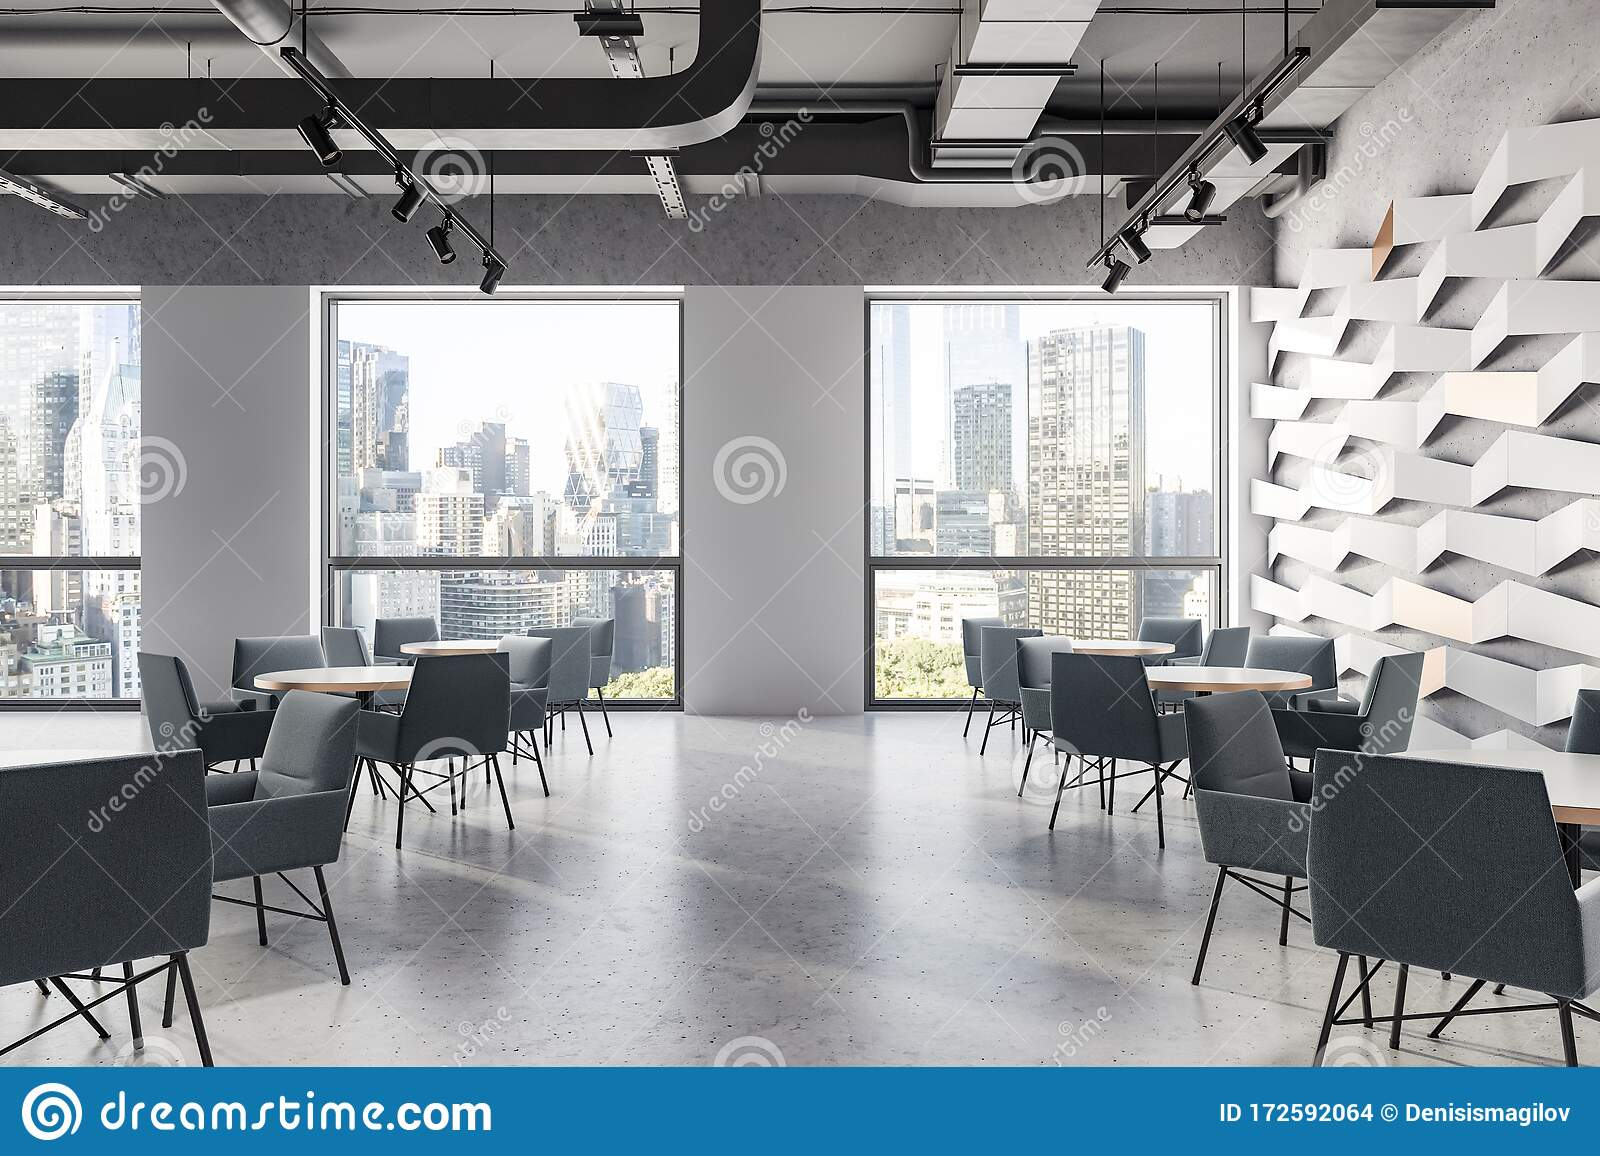 Gray Ceiling Geometric Pattern Cafe With Windows Stock Illustration Illustration Of Grey Inside 172592064